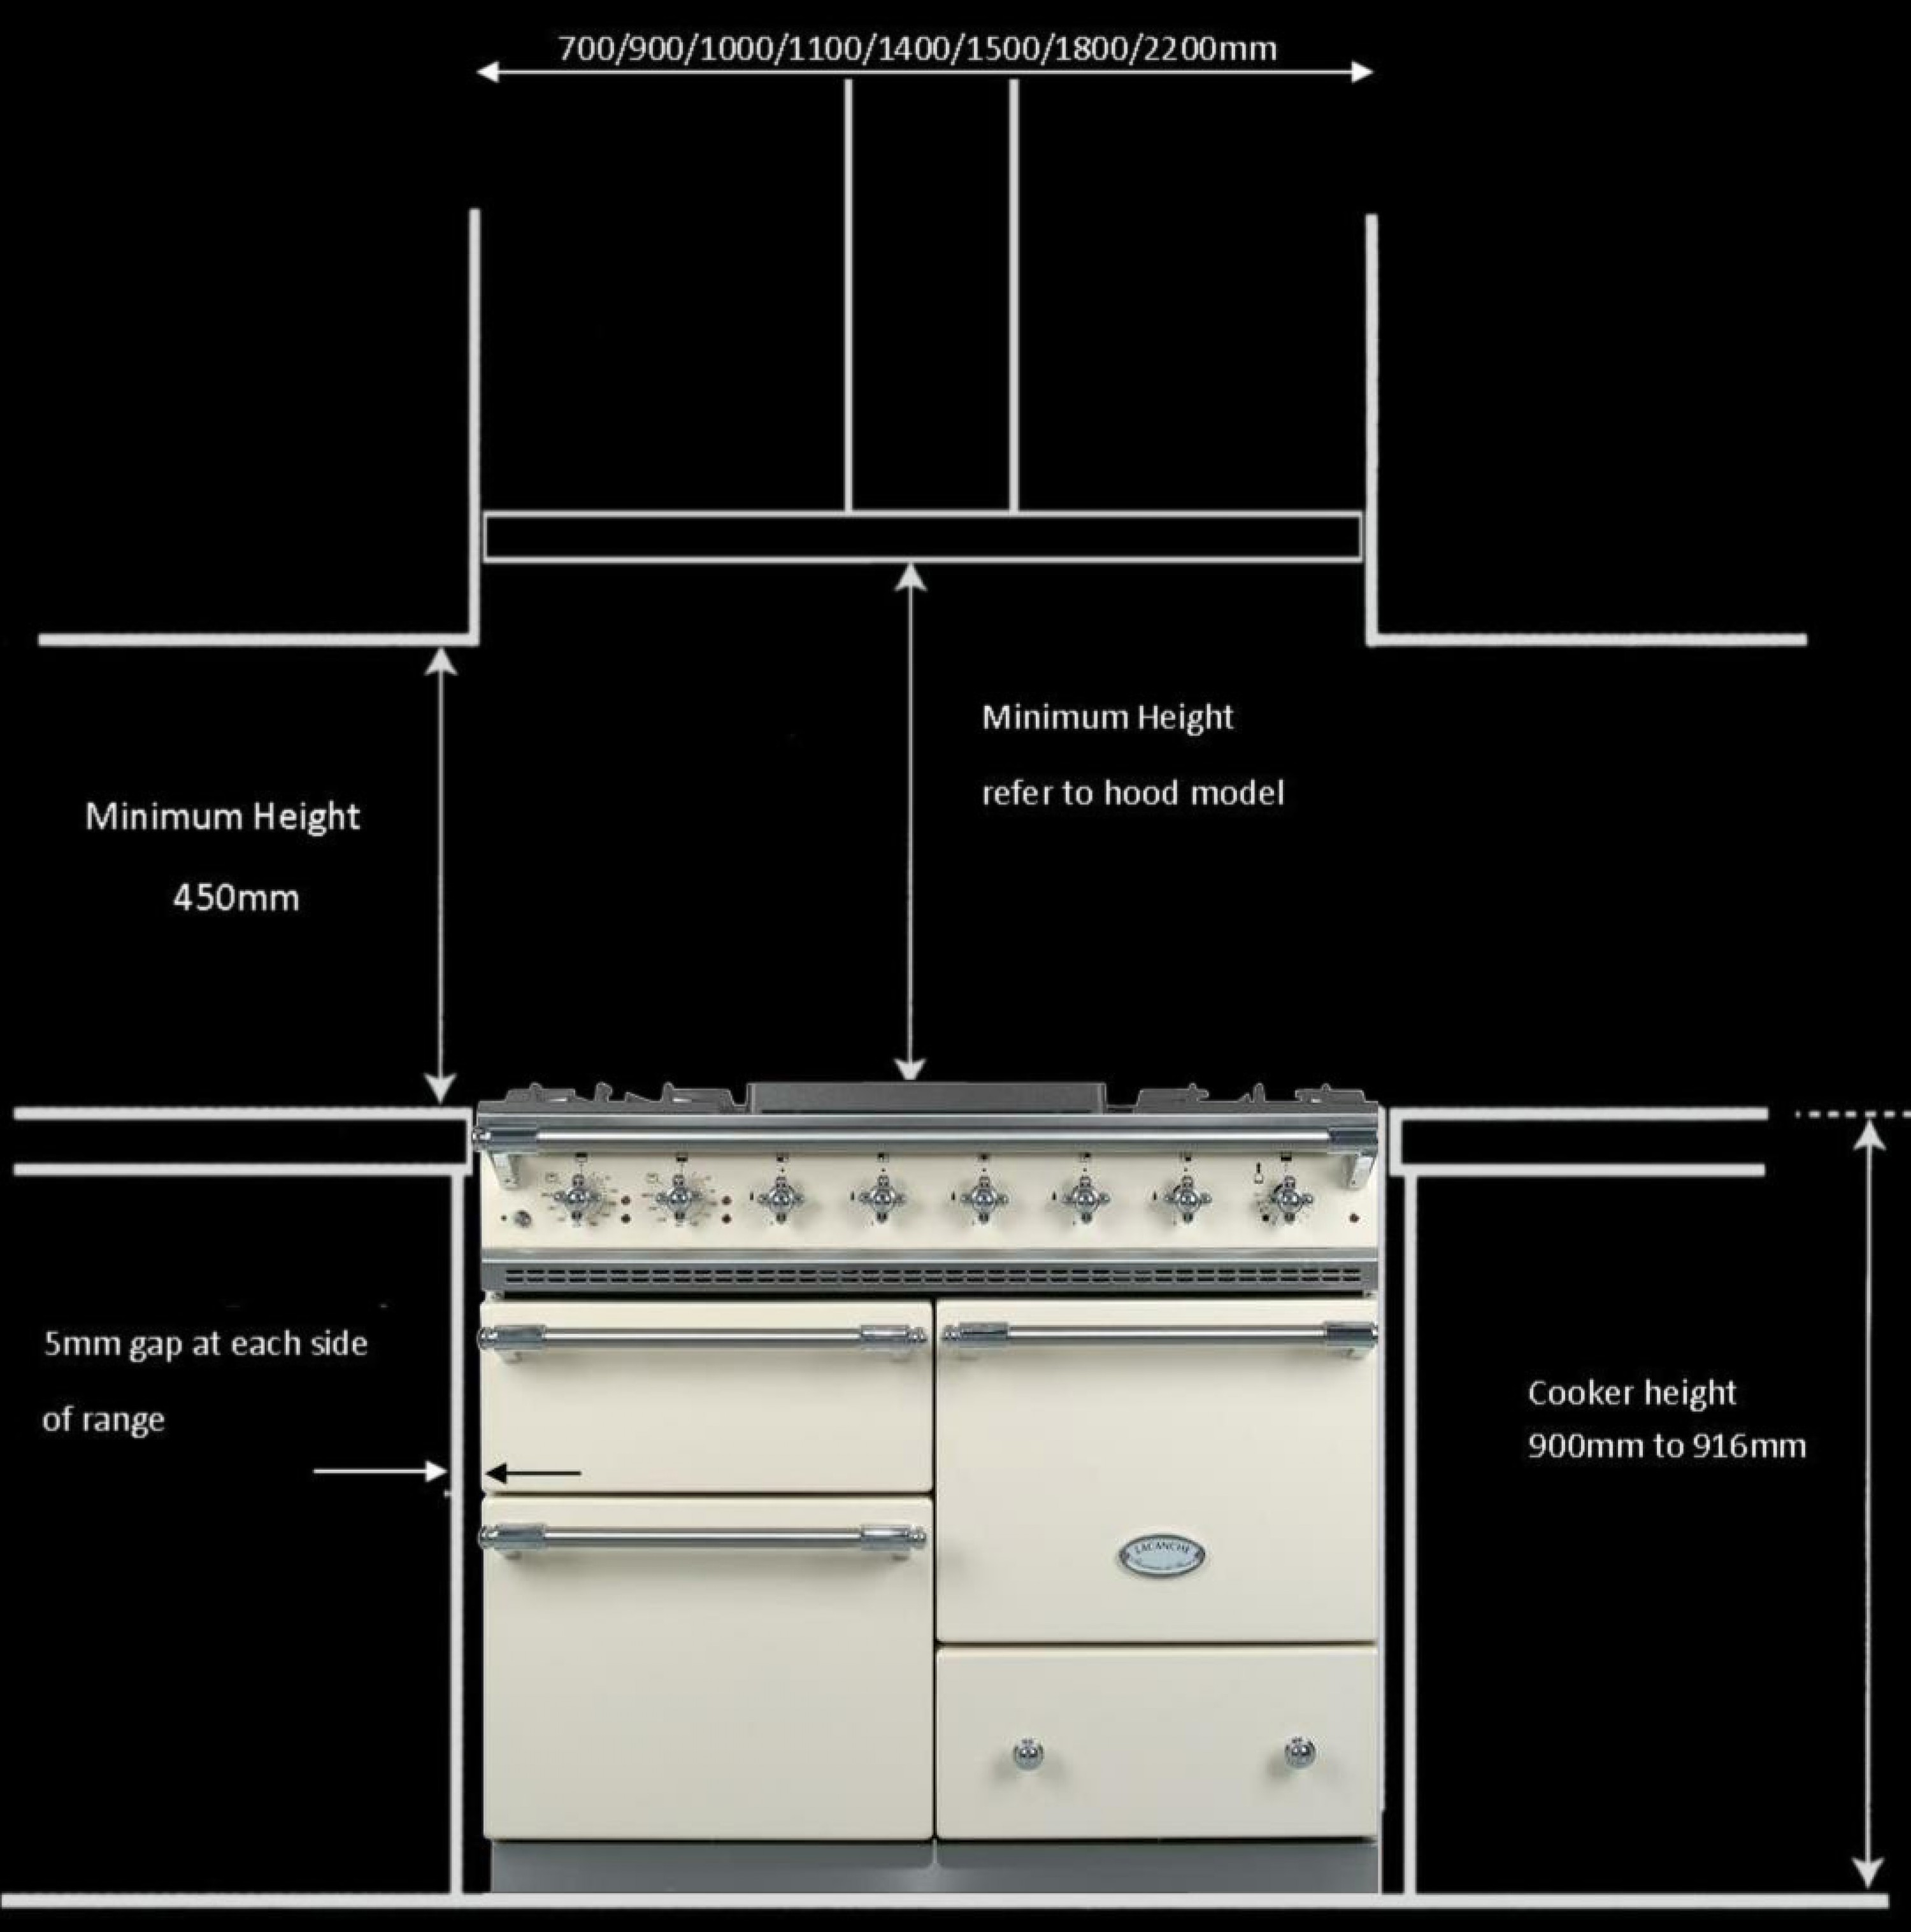 Kitchen Stove Installation Guide: Technical